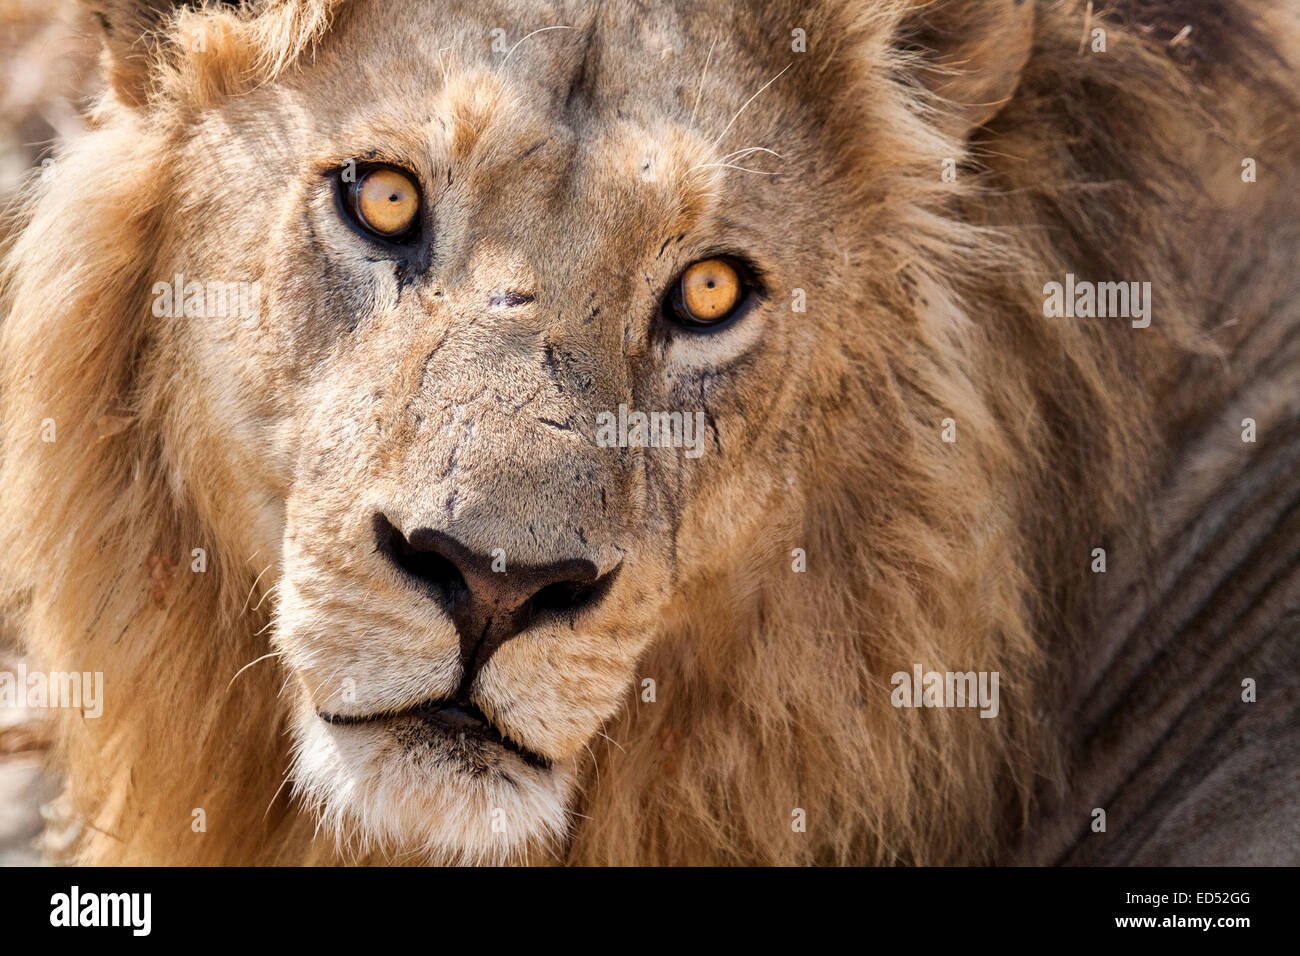 Resting male lion, with piercing eyes. - Stock Image